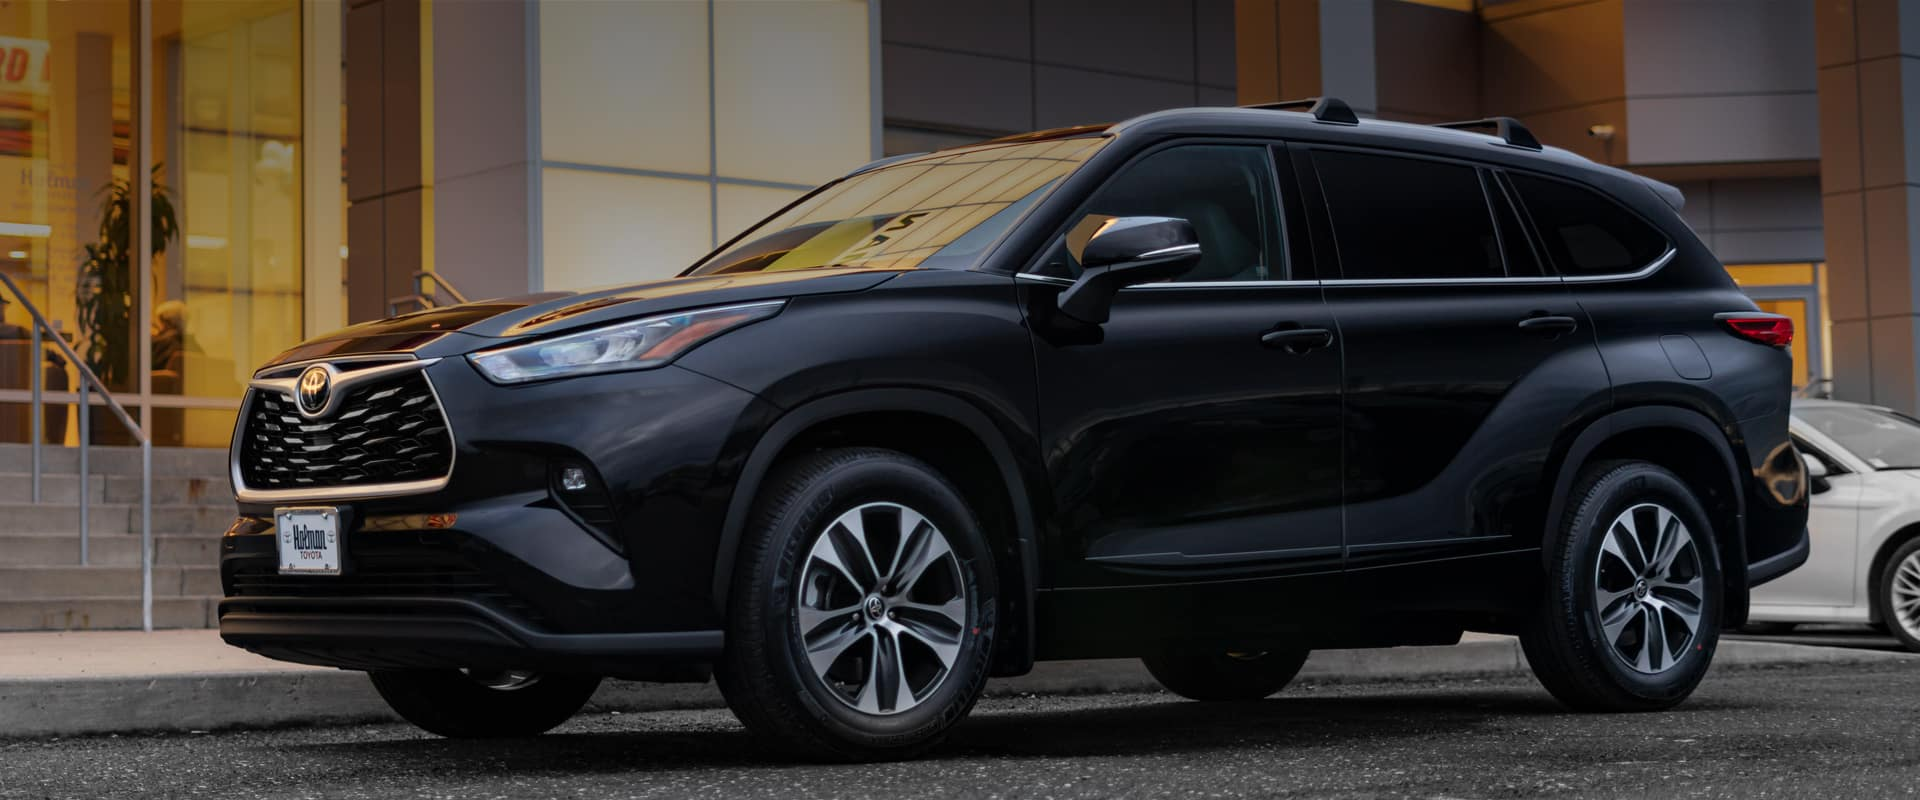 2020 Toyota Highlander at Holman Toyota Front View